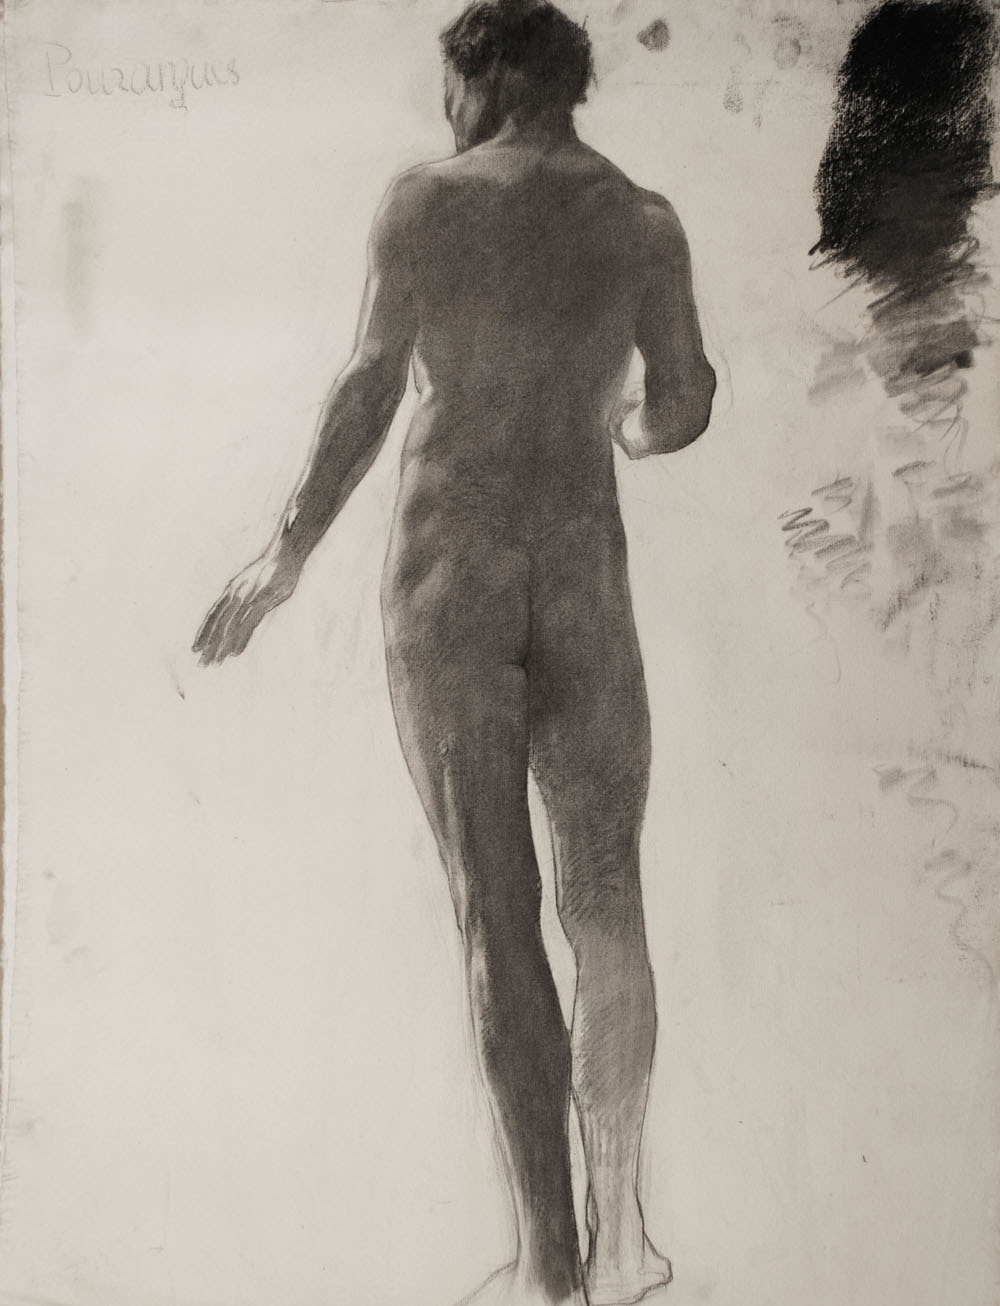 Lucien-Paul Pouzargues drawing nude from behind